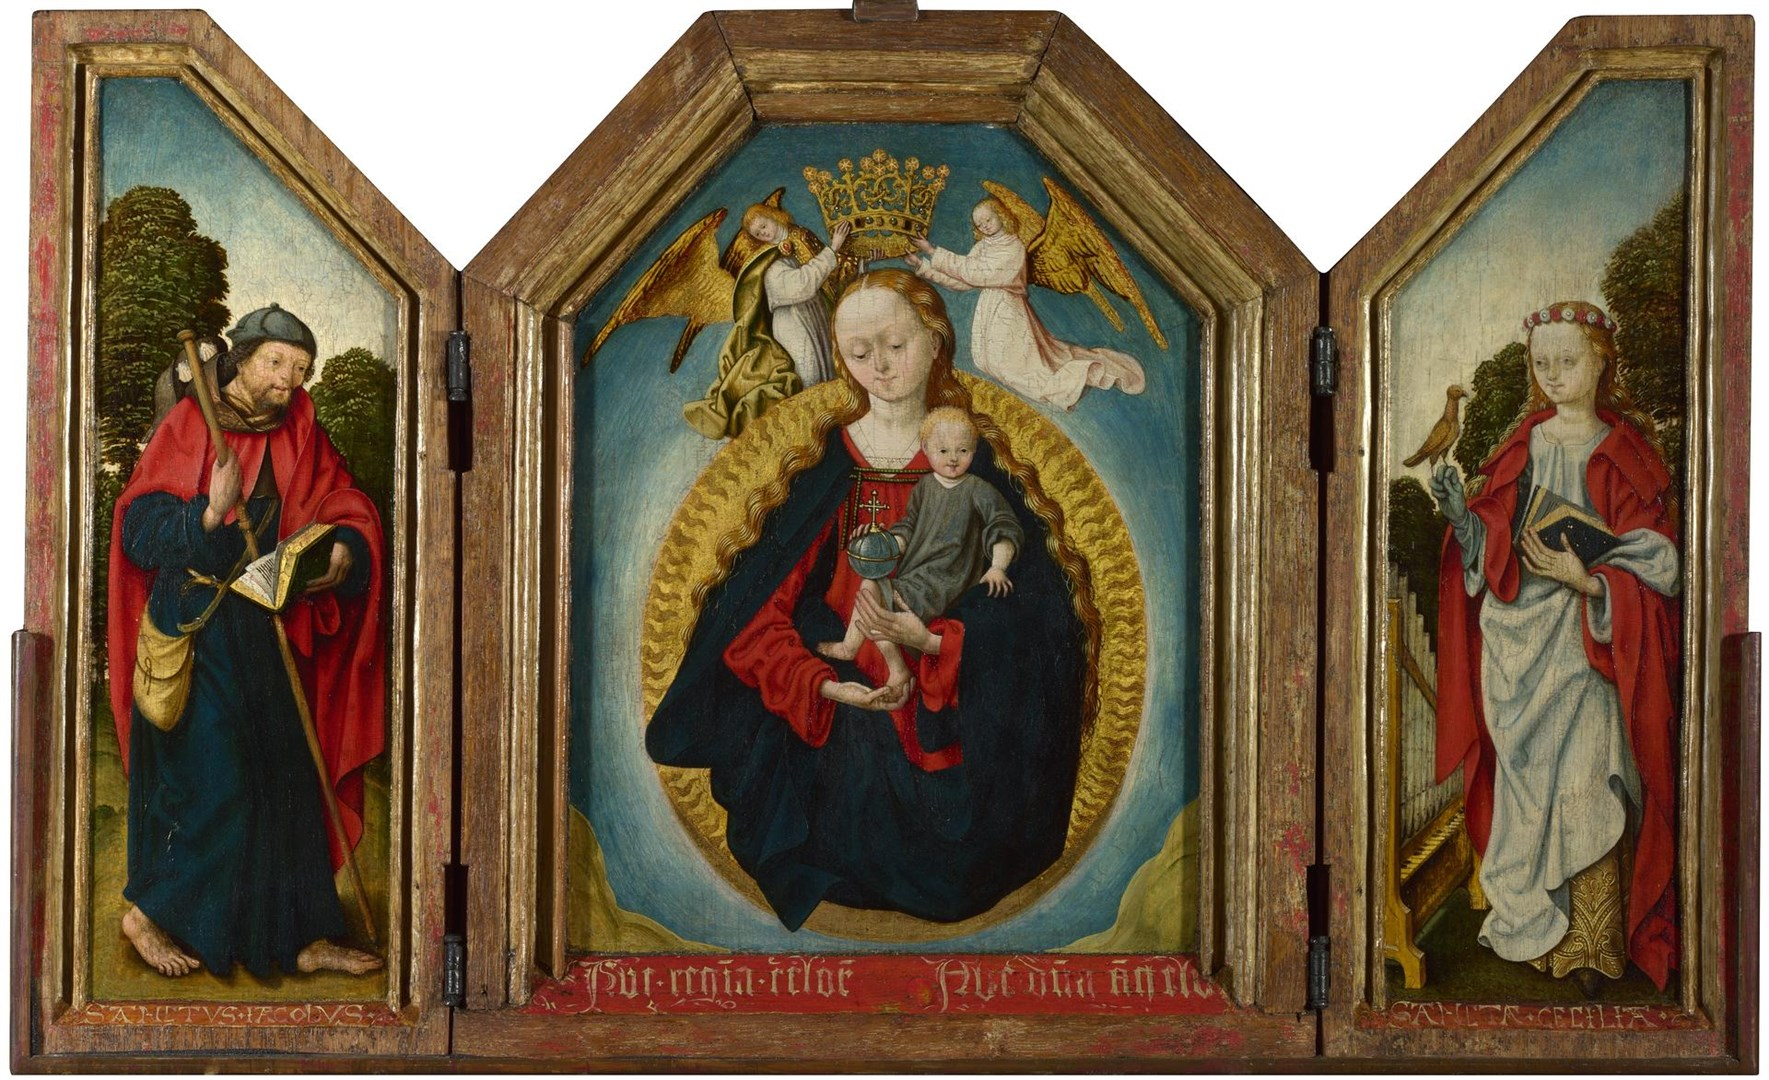 The Virgin and Child in Glory with Saints by Workshop of the Master of the Saint Bartholomew Altarpiece